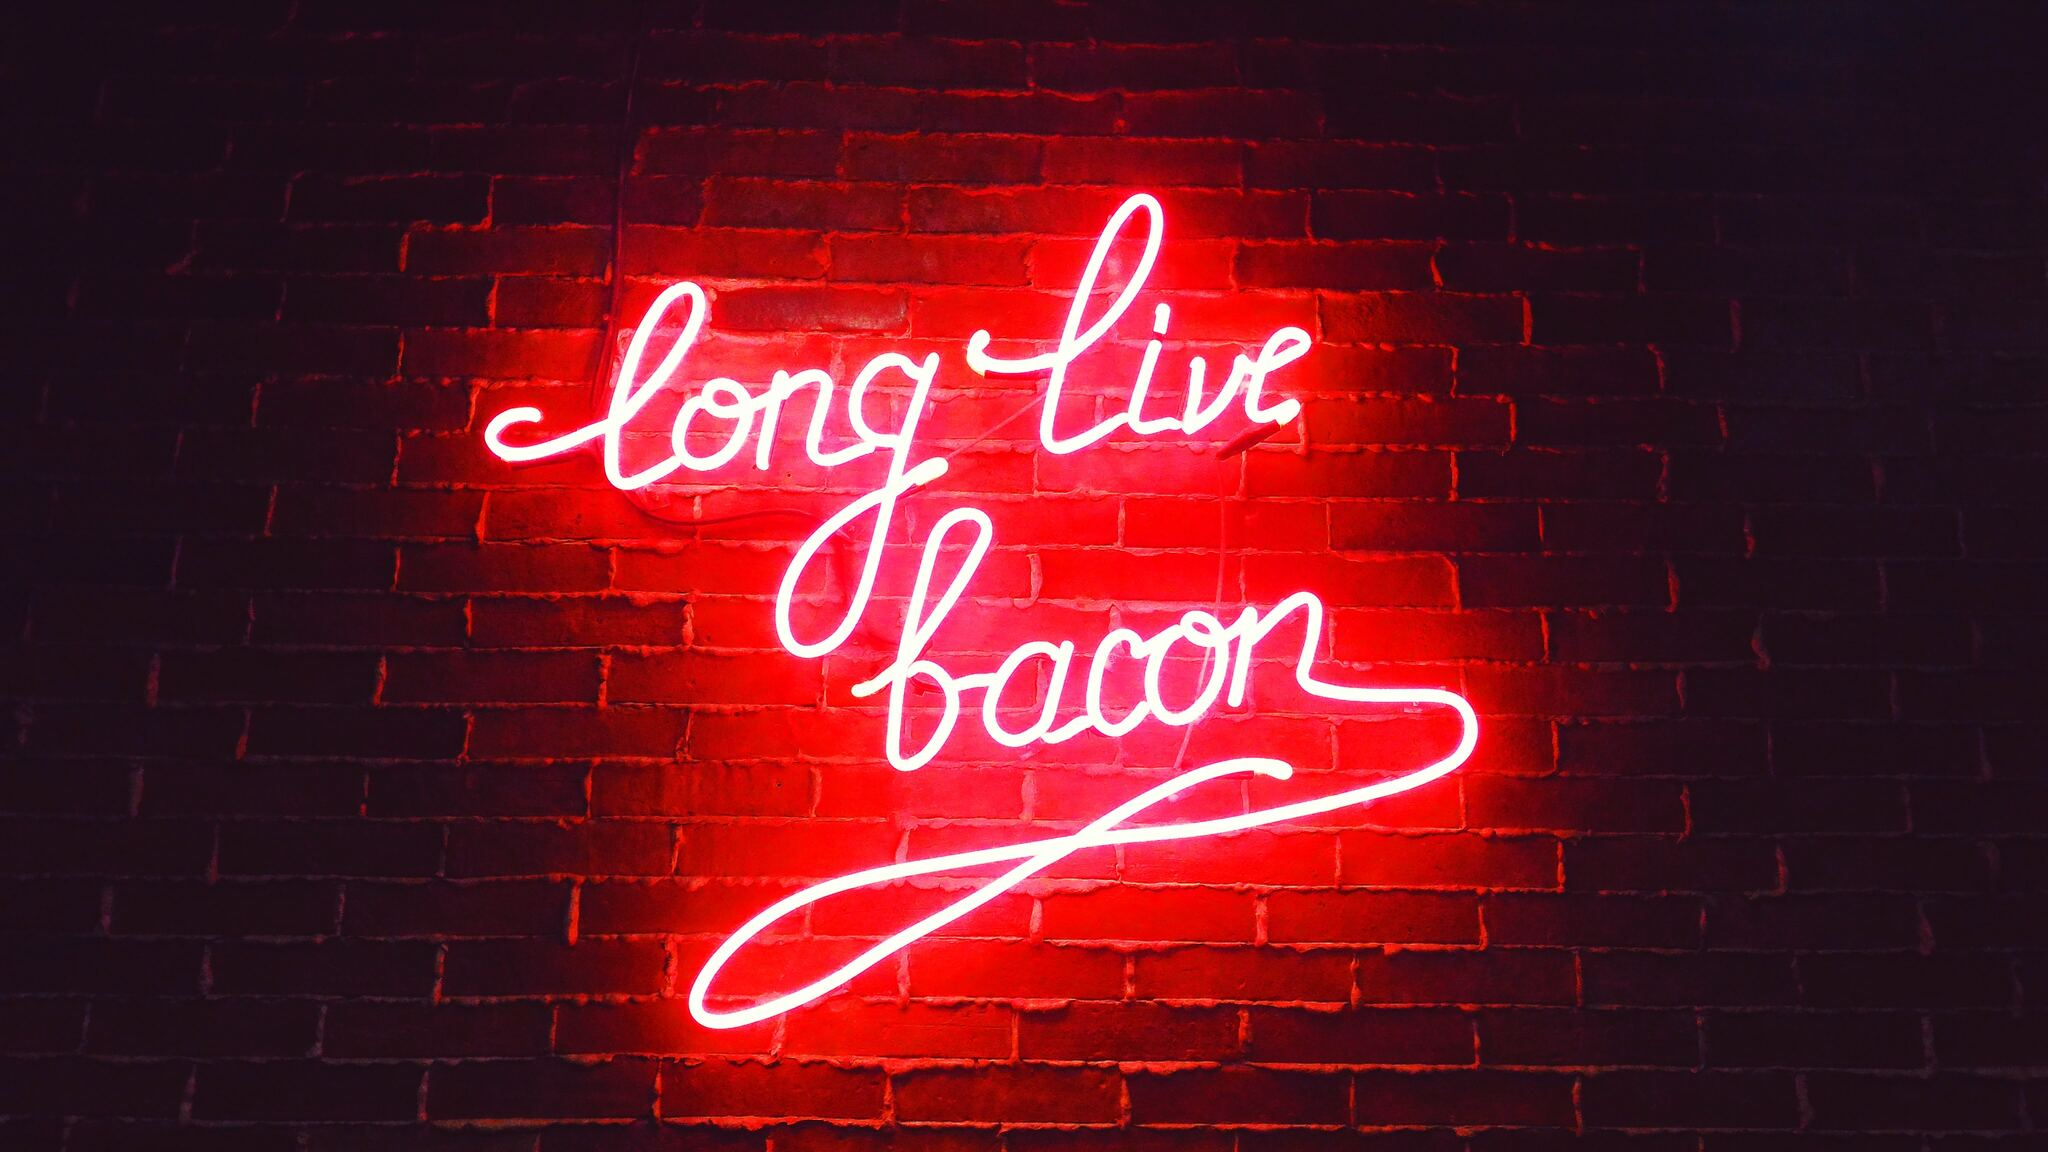 2048x1152 Long Live Bacon Neon Lights 2048x1152 Resolution HD Wallpapers Download Free Images Wallpaper [1000image.com]